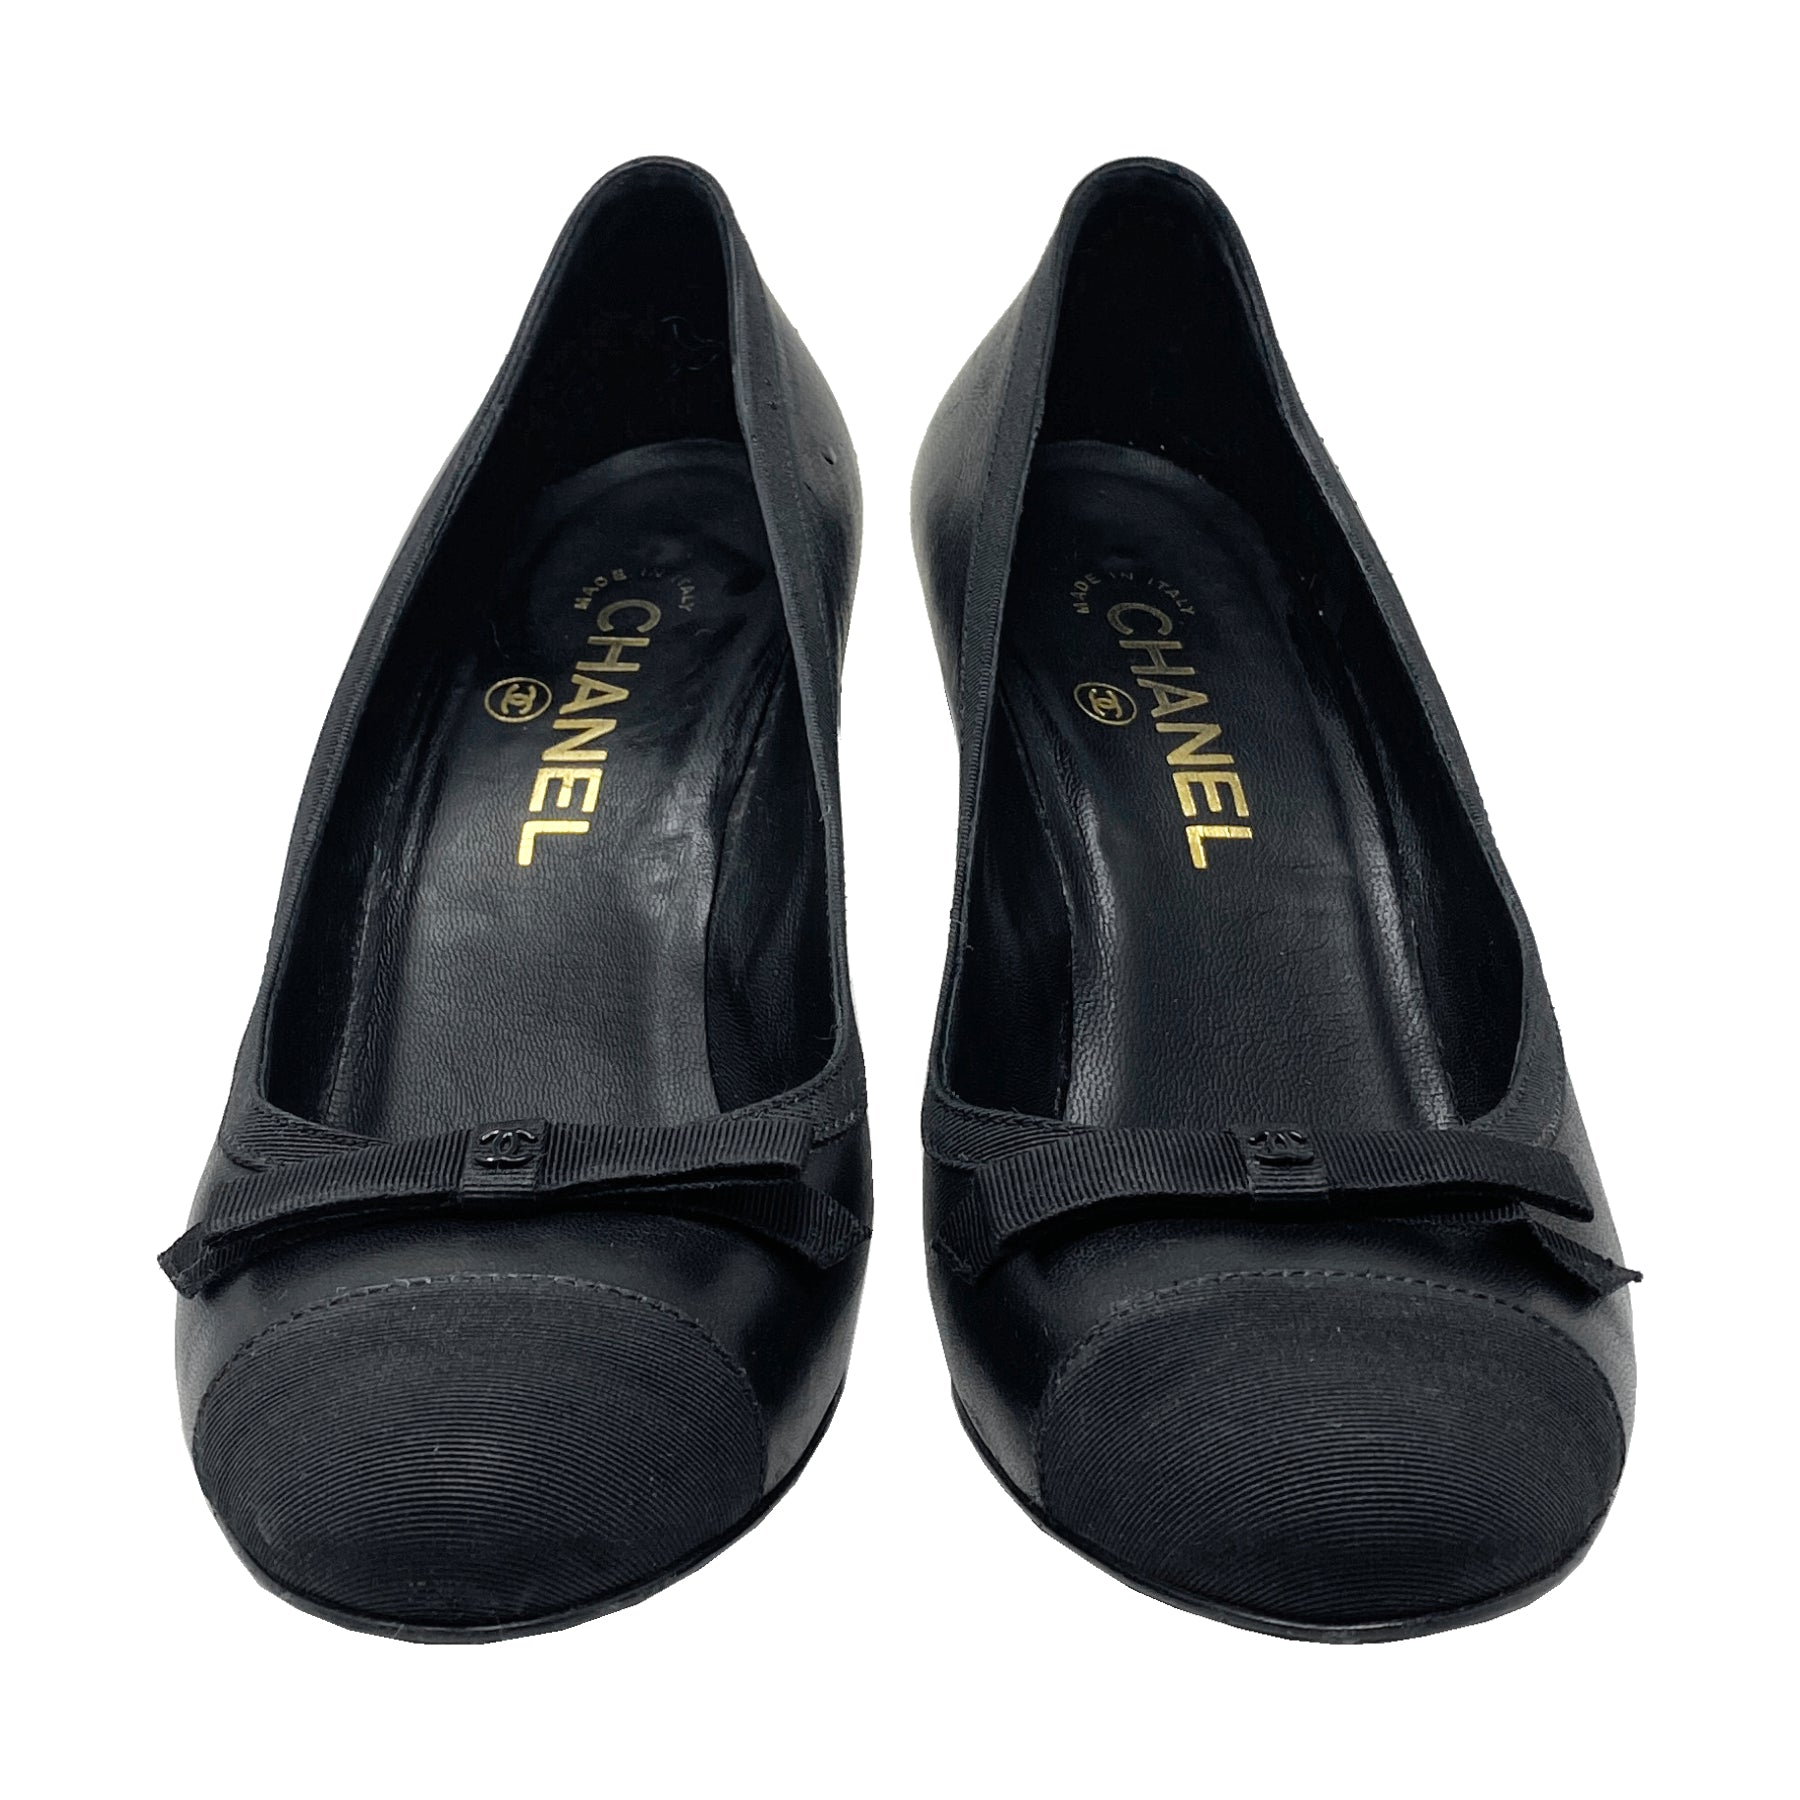 Chanel Grosgrain Cap Toe Leather Pumps Size 37.5